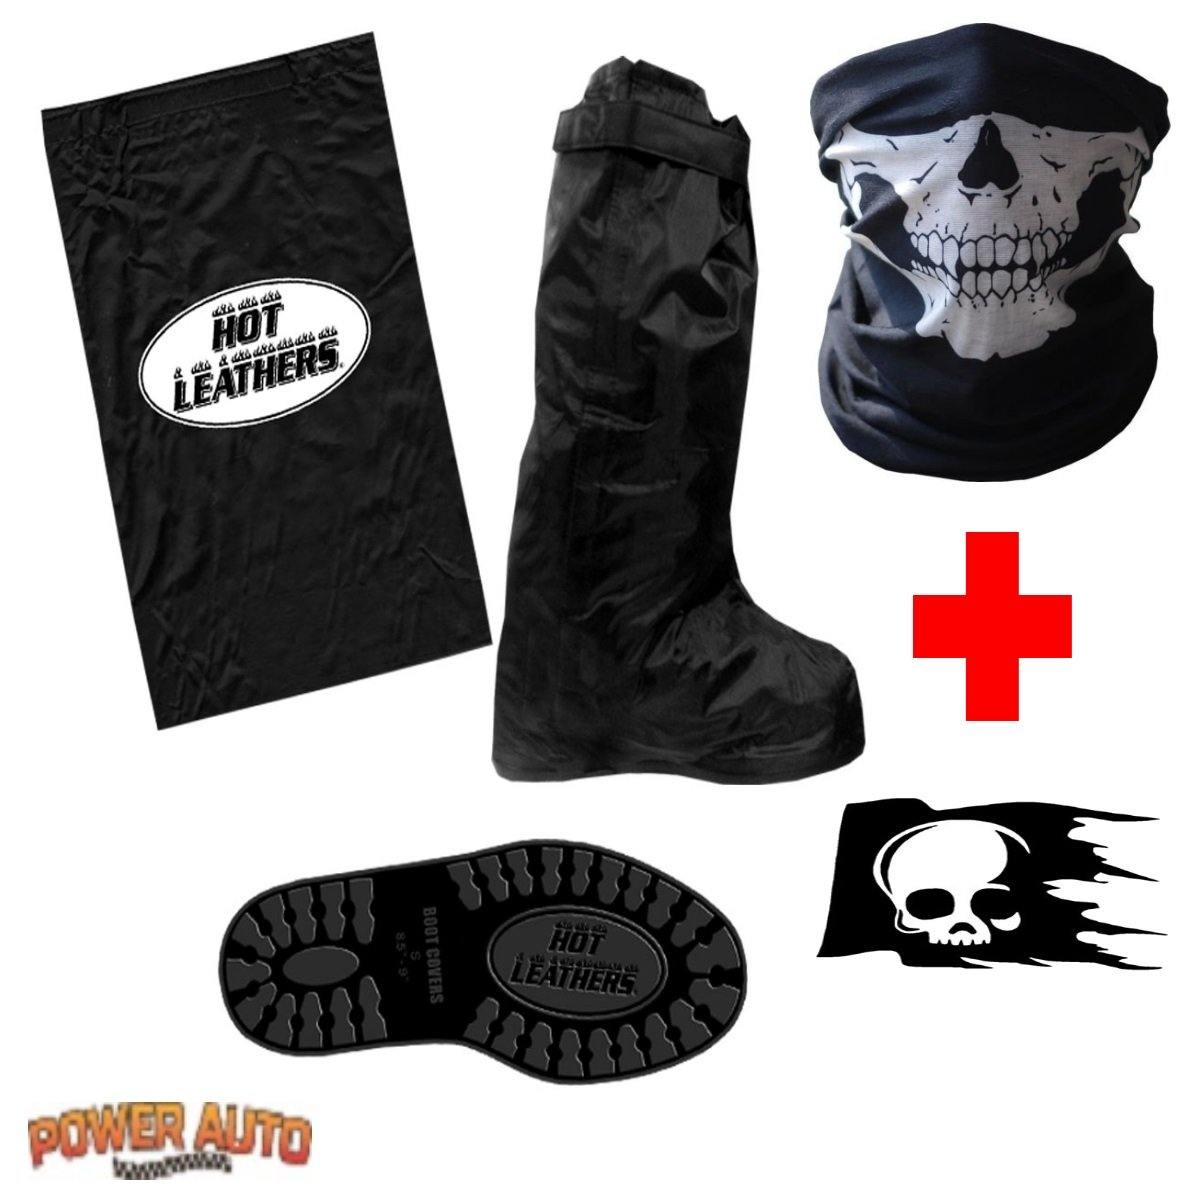 Motorcycle Boot Covers - Outdoor Protective Riding Rain Suit Gear Waterproof Weatherproof - Full Shoe Slip Over - Rainstorm Rainy Days Plus Skull Decal and Skeleton Riding Face Mask (XL) Power Auto